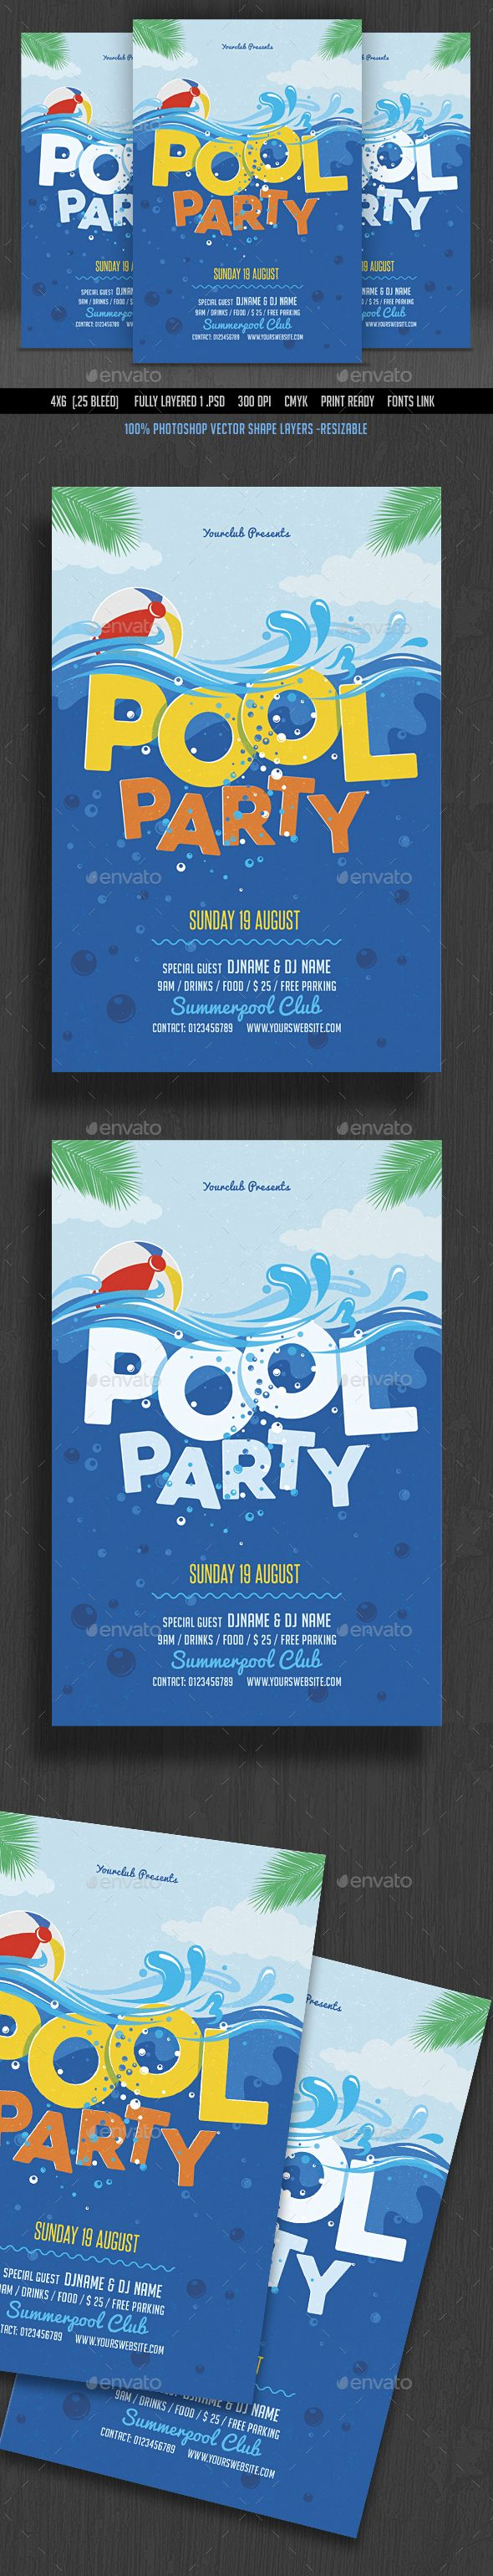 Pool Party Flyer Template PSD. Download here: http://graphicriver.net/item/pool-party-flyer/16592160?ref=ksioks